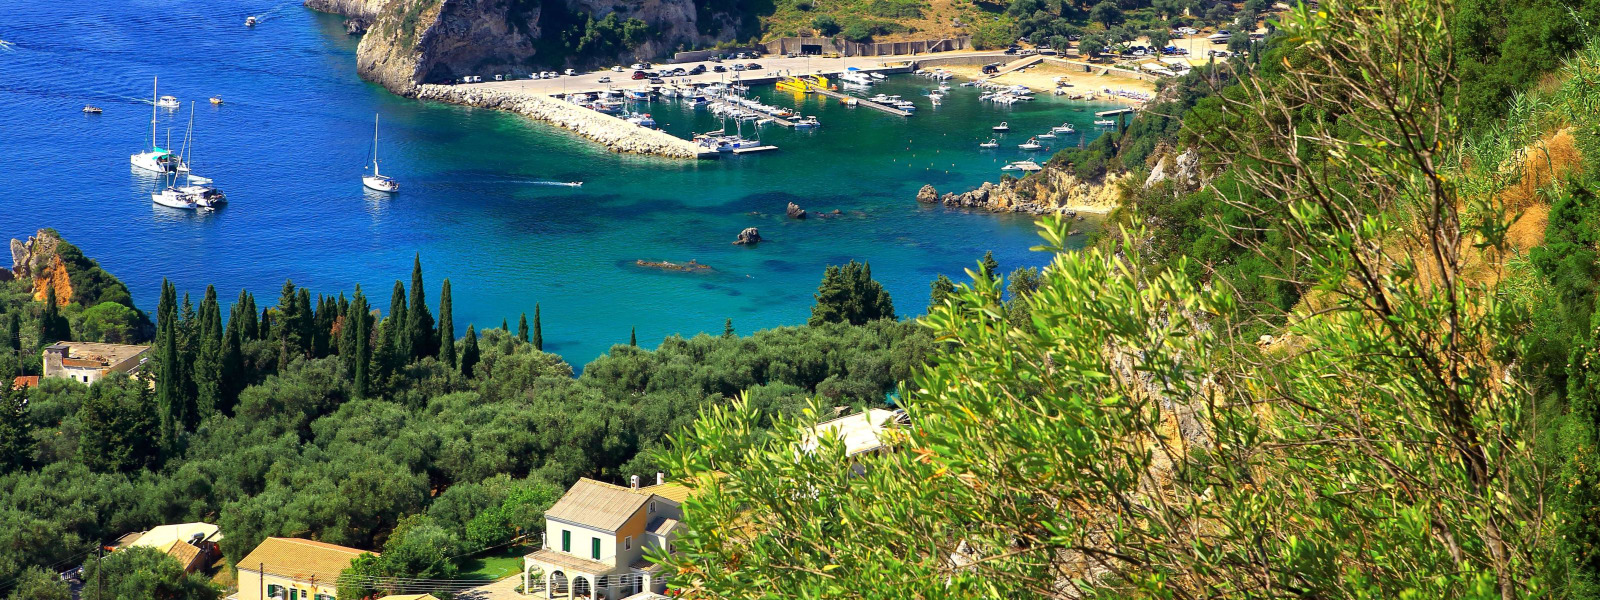 Corfu travel guide: what to see, do, costs, & ways to save.